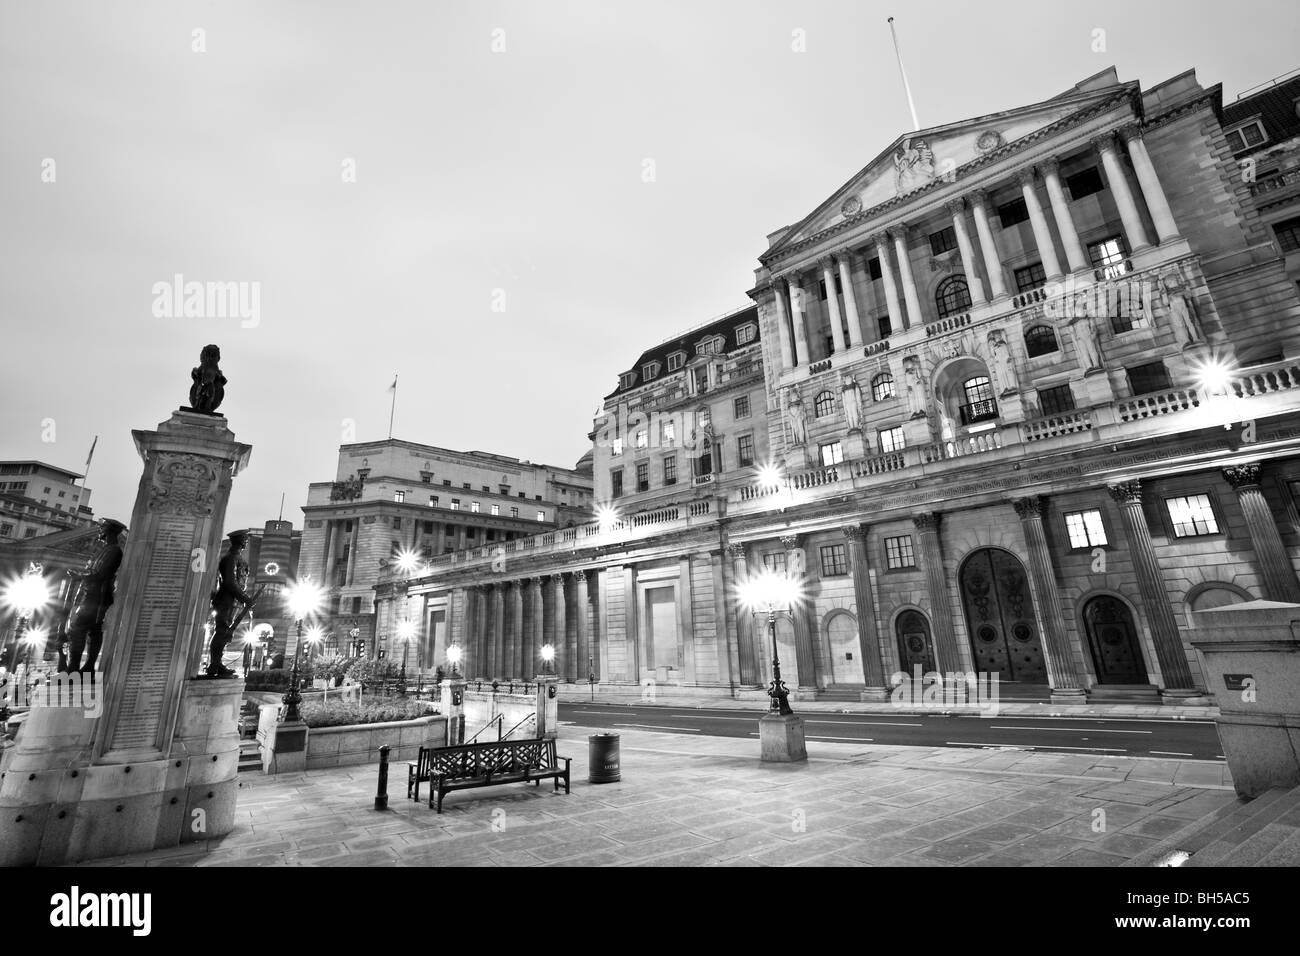 Bank Of England, London - Stock Image